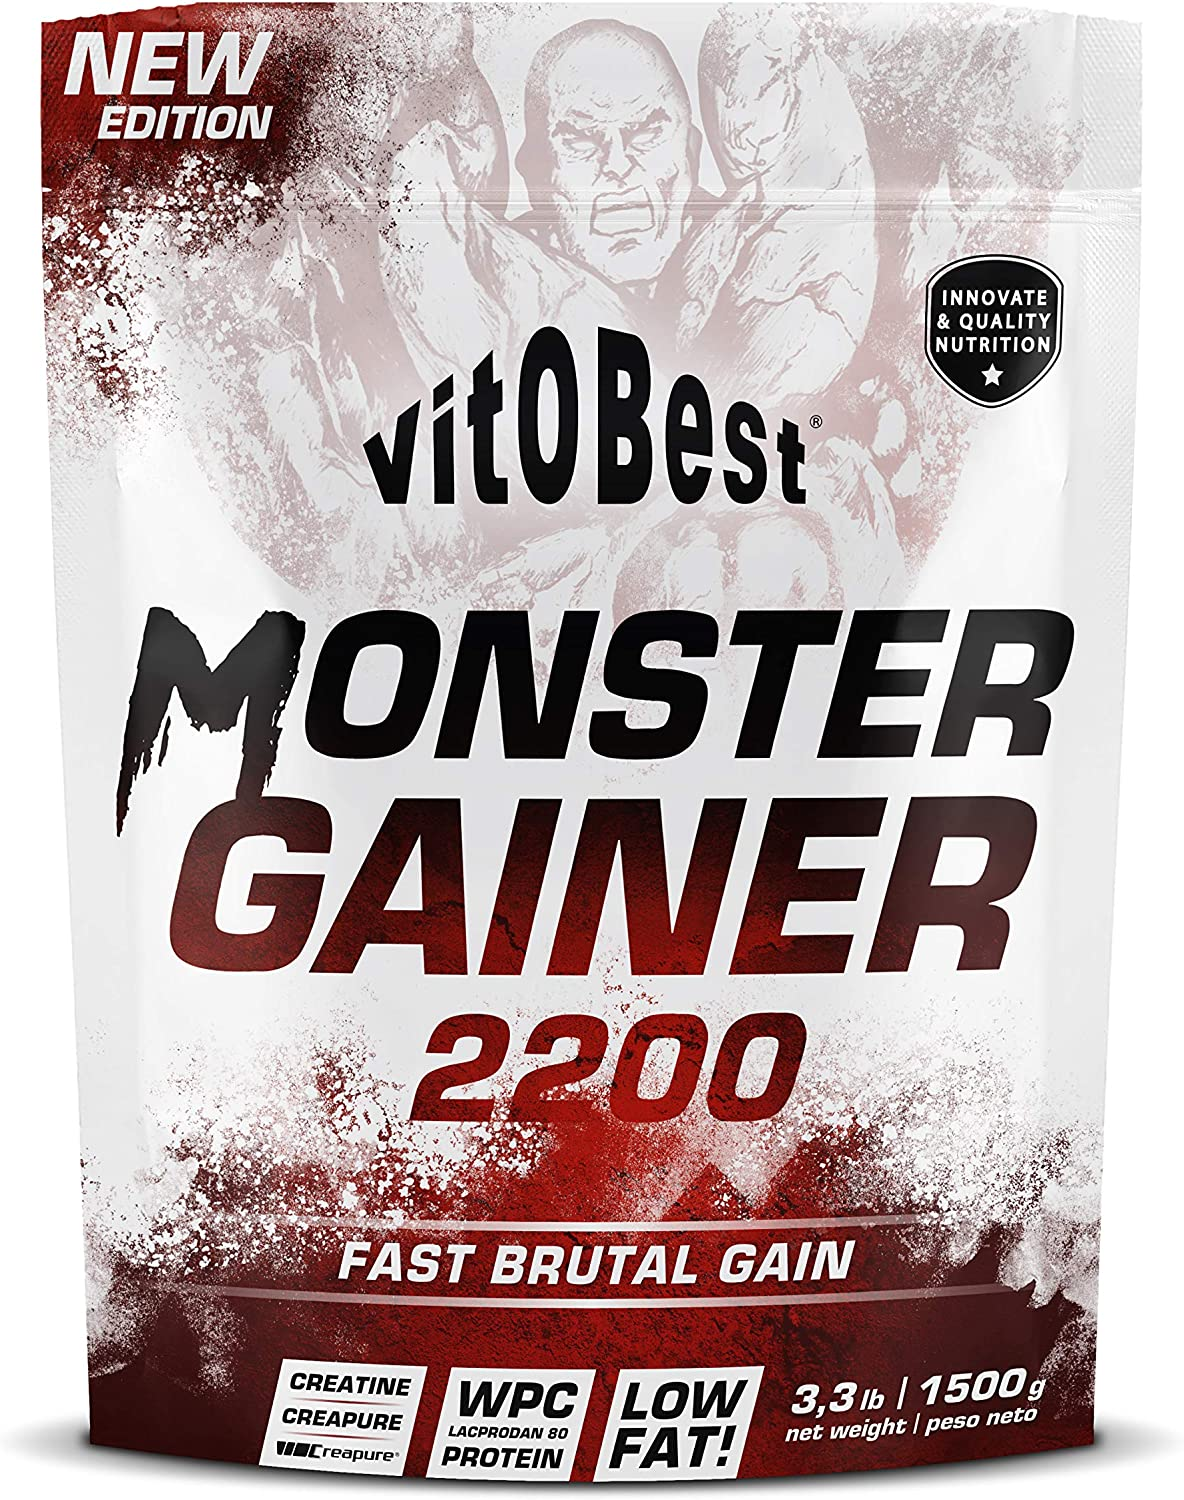 Carbohidratos MONSTER GAINER 2200 - Suplementos Alimentación y ...